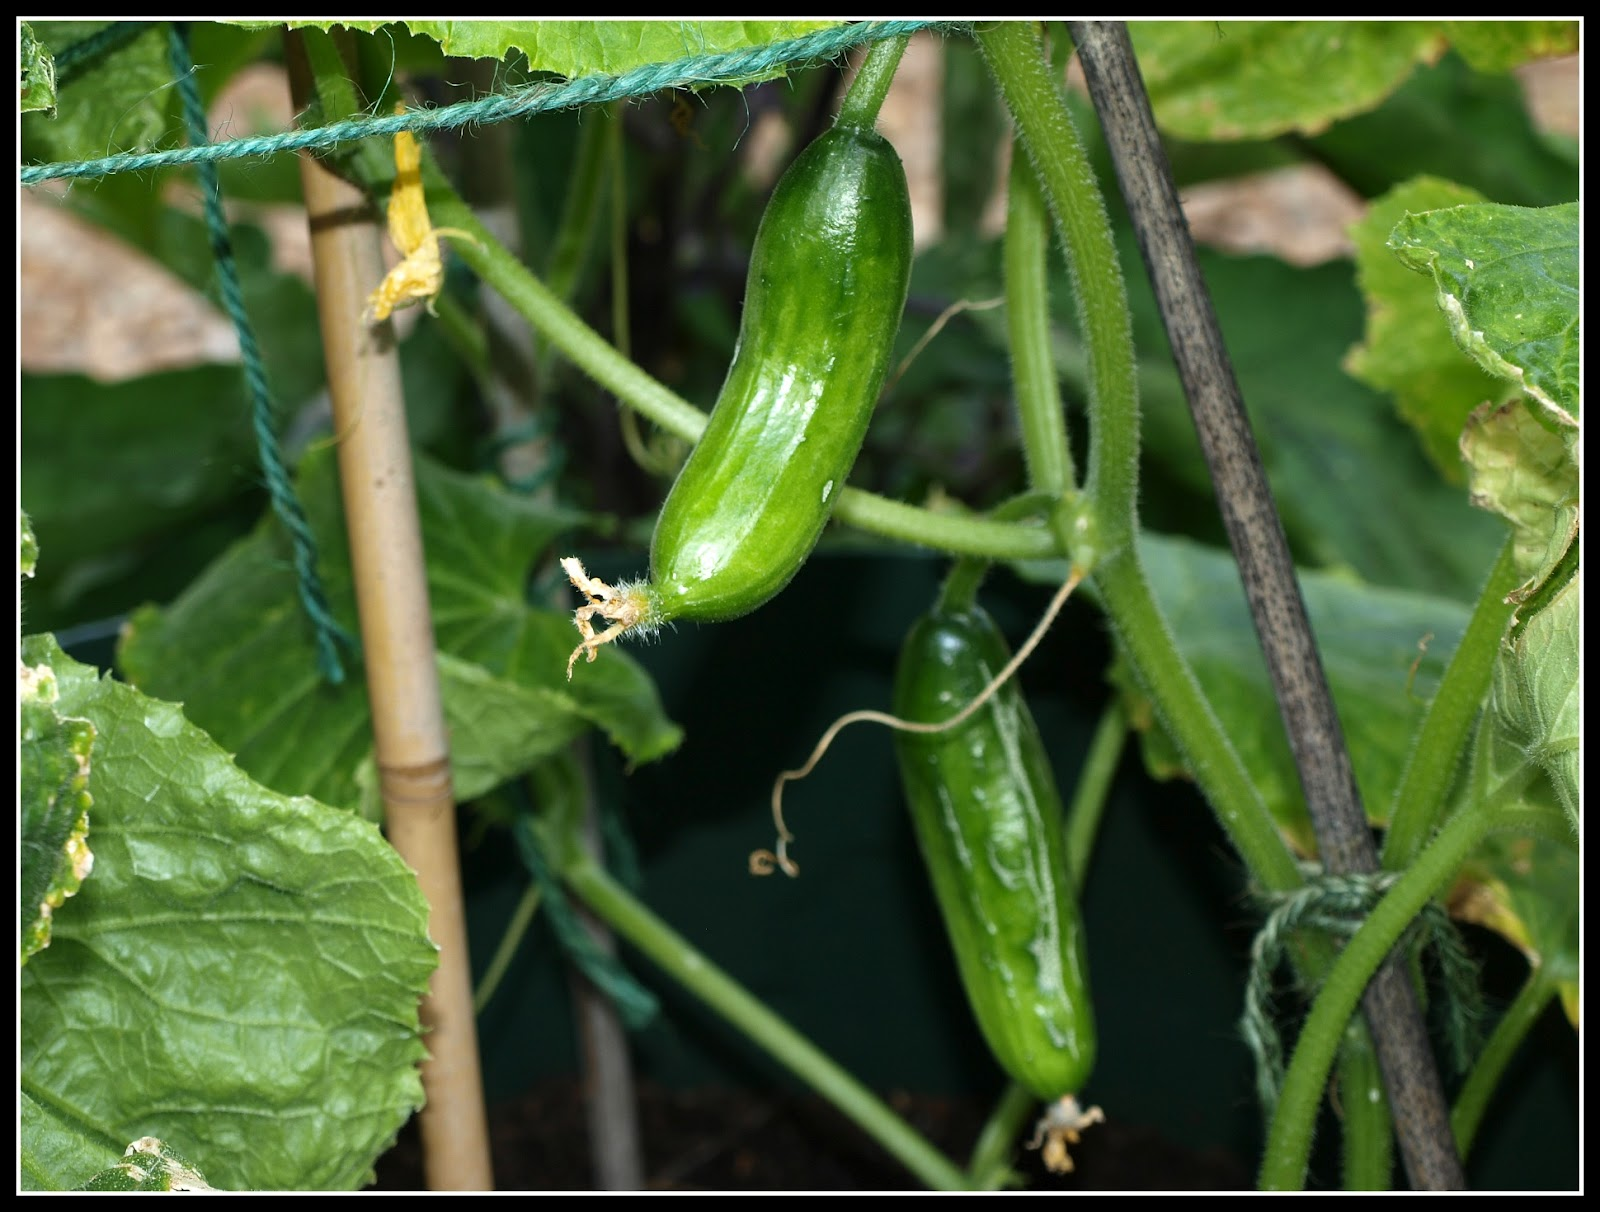 HOW TO GROW CUCUMBERS The Garden of Eaden